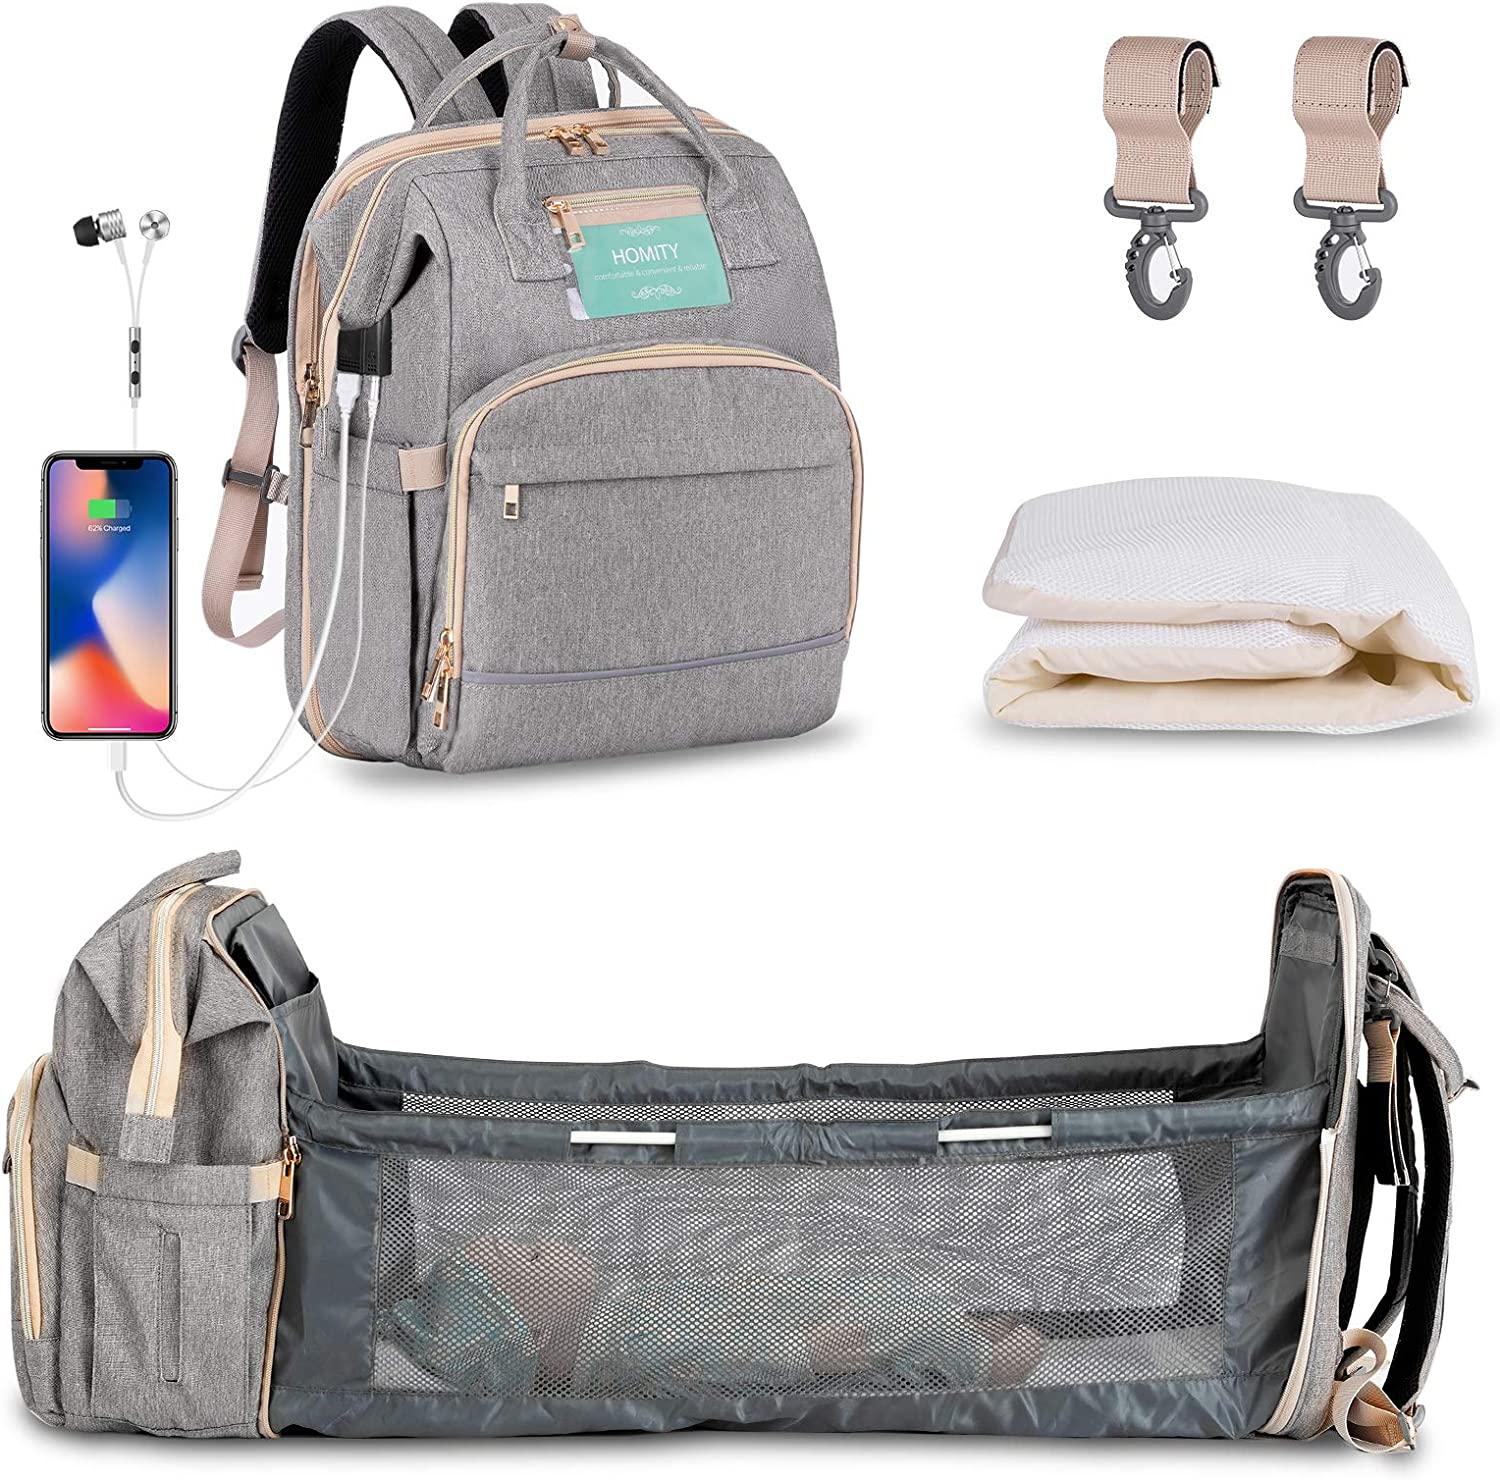 Diaper Bag Backpack with Extendable Folding Crib,HOMITY Baby Bag For Girls Boys With Changing Station,USB Charge Port,Large Capacity,Waterproof(Grey)